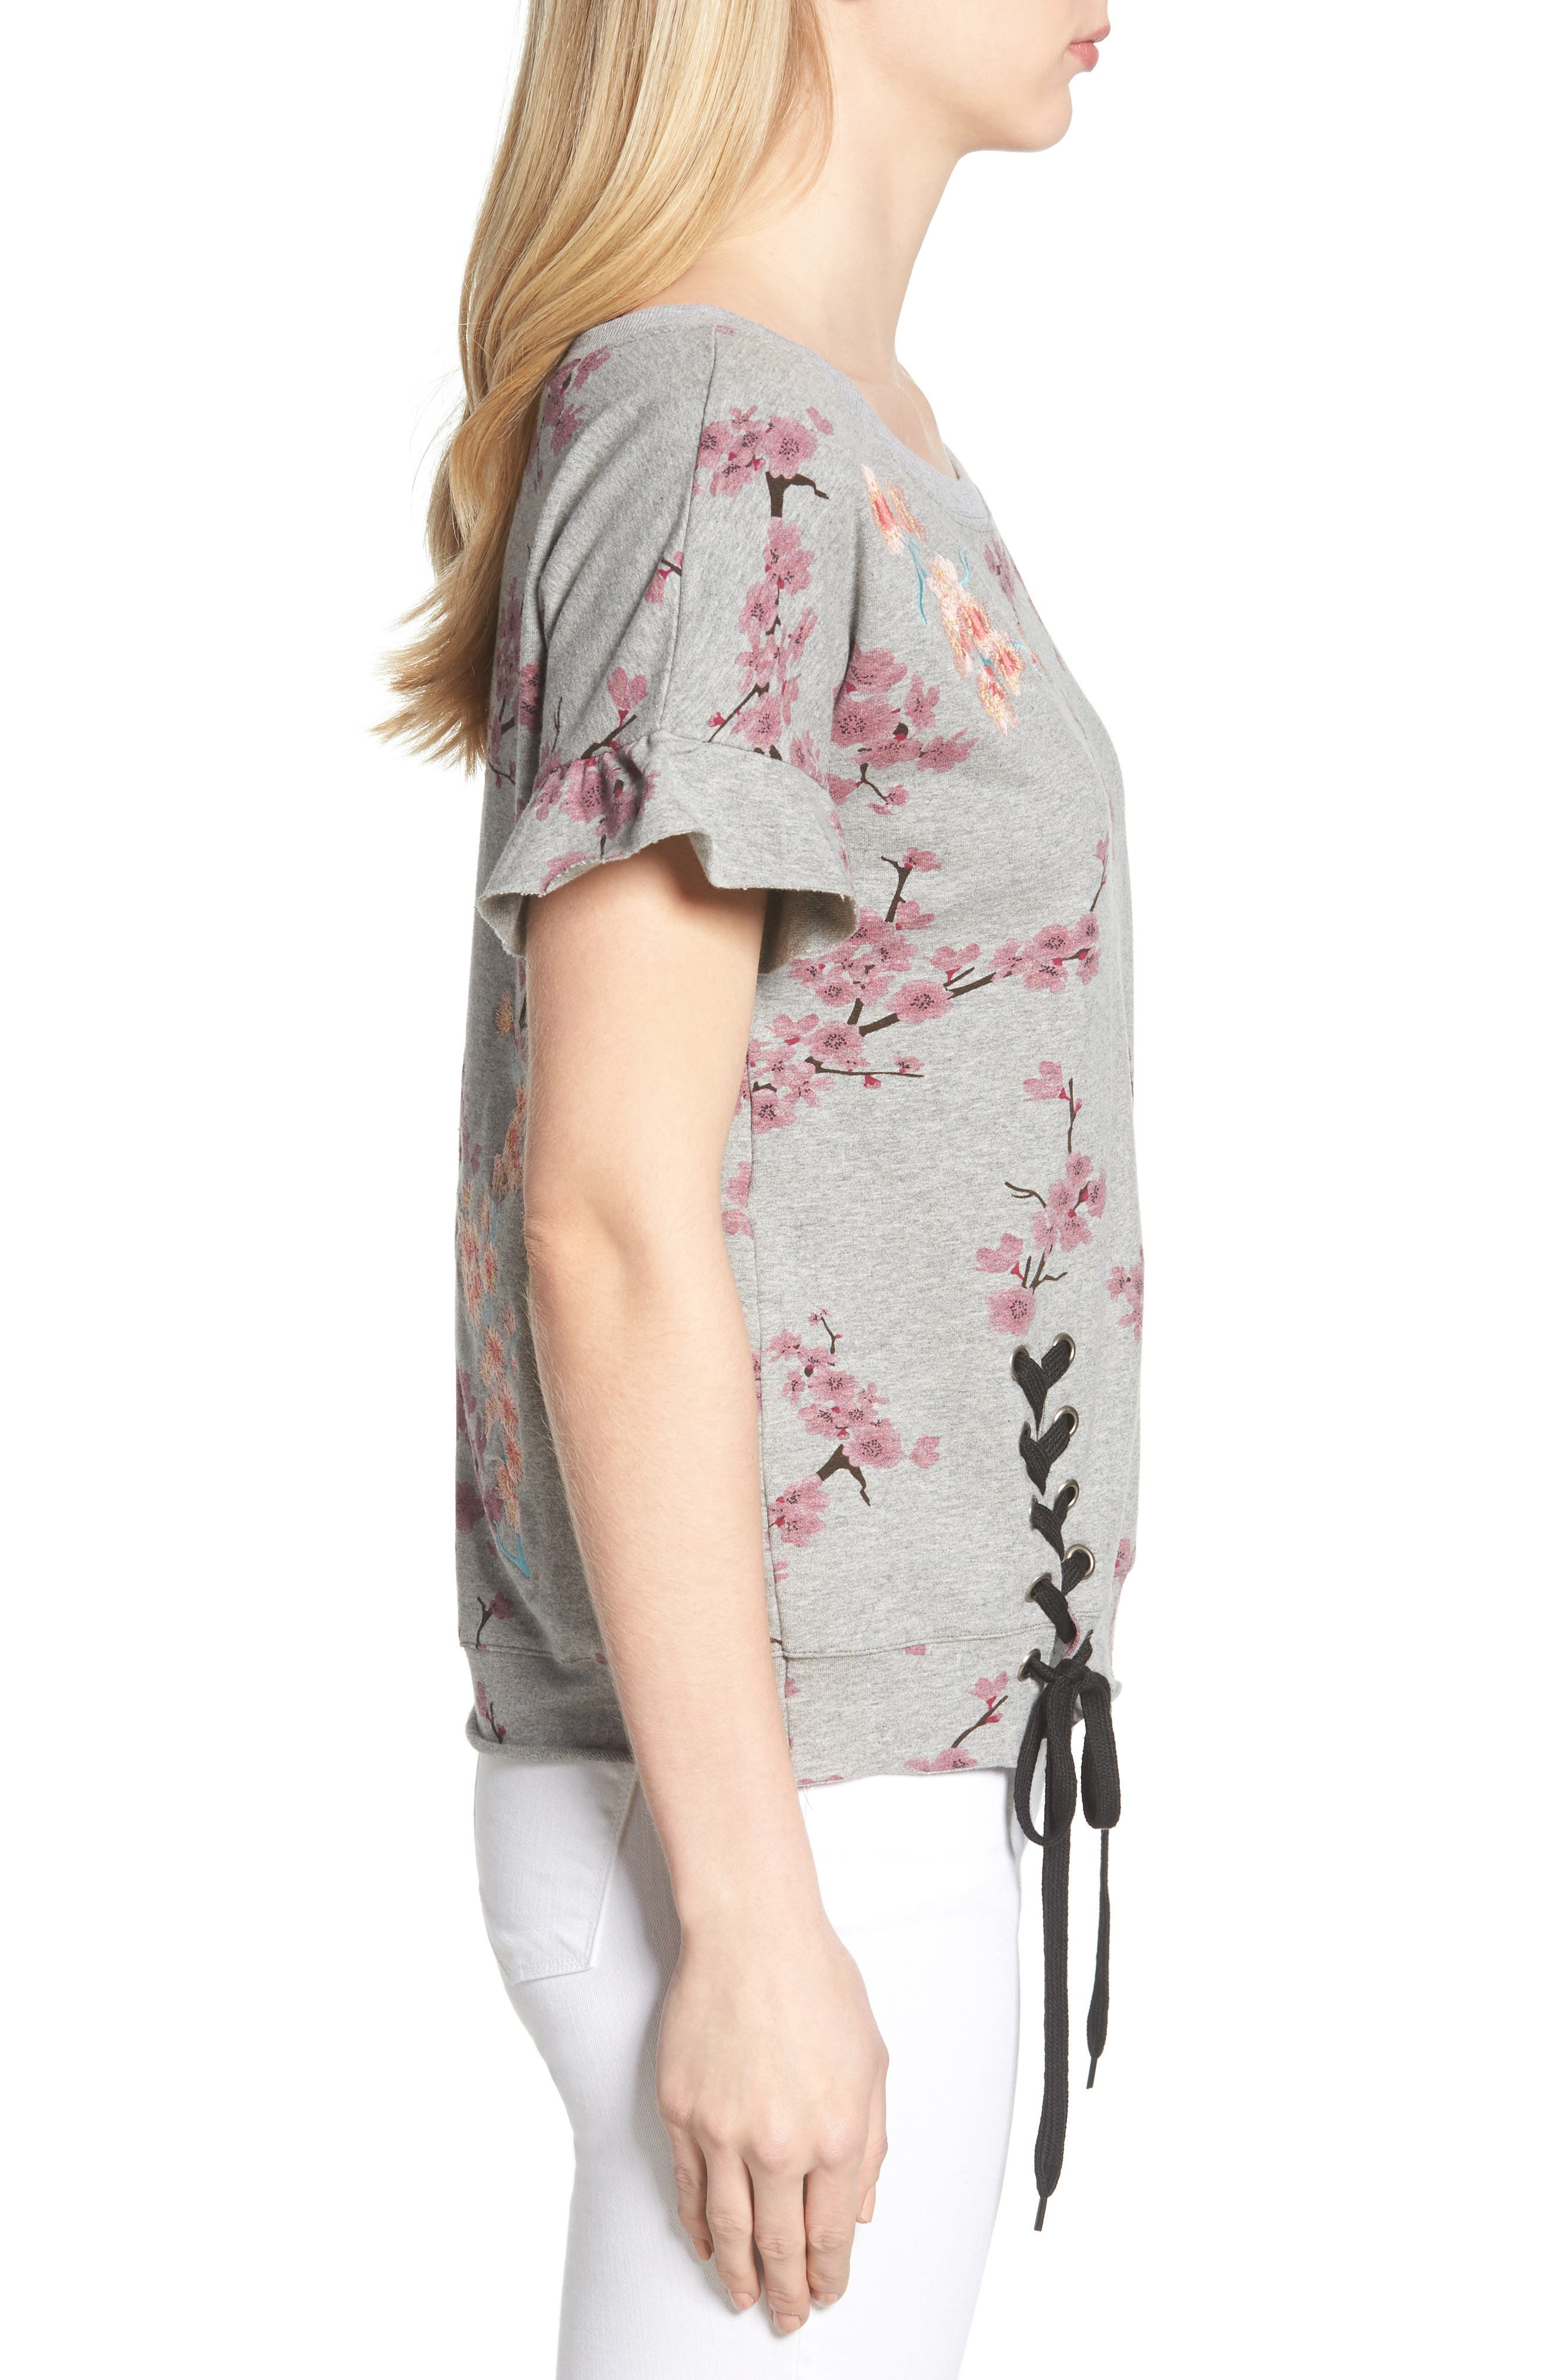 Short Sleeve Lace Up Cherry Blossom Sweatshirt,                             Alternate thumbnail 3, color,                             Grey Cherry Blossom